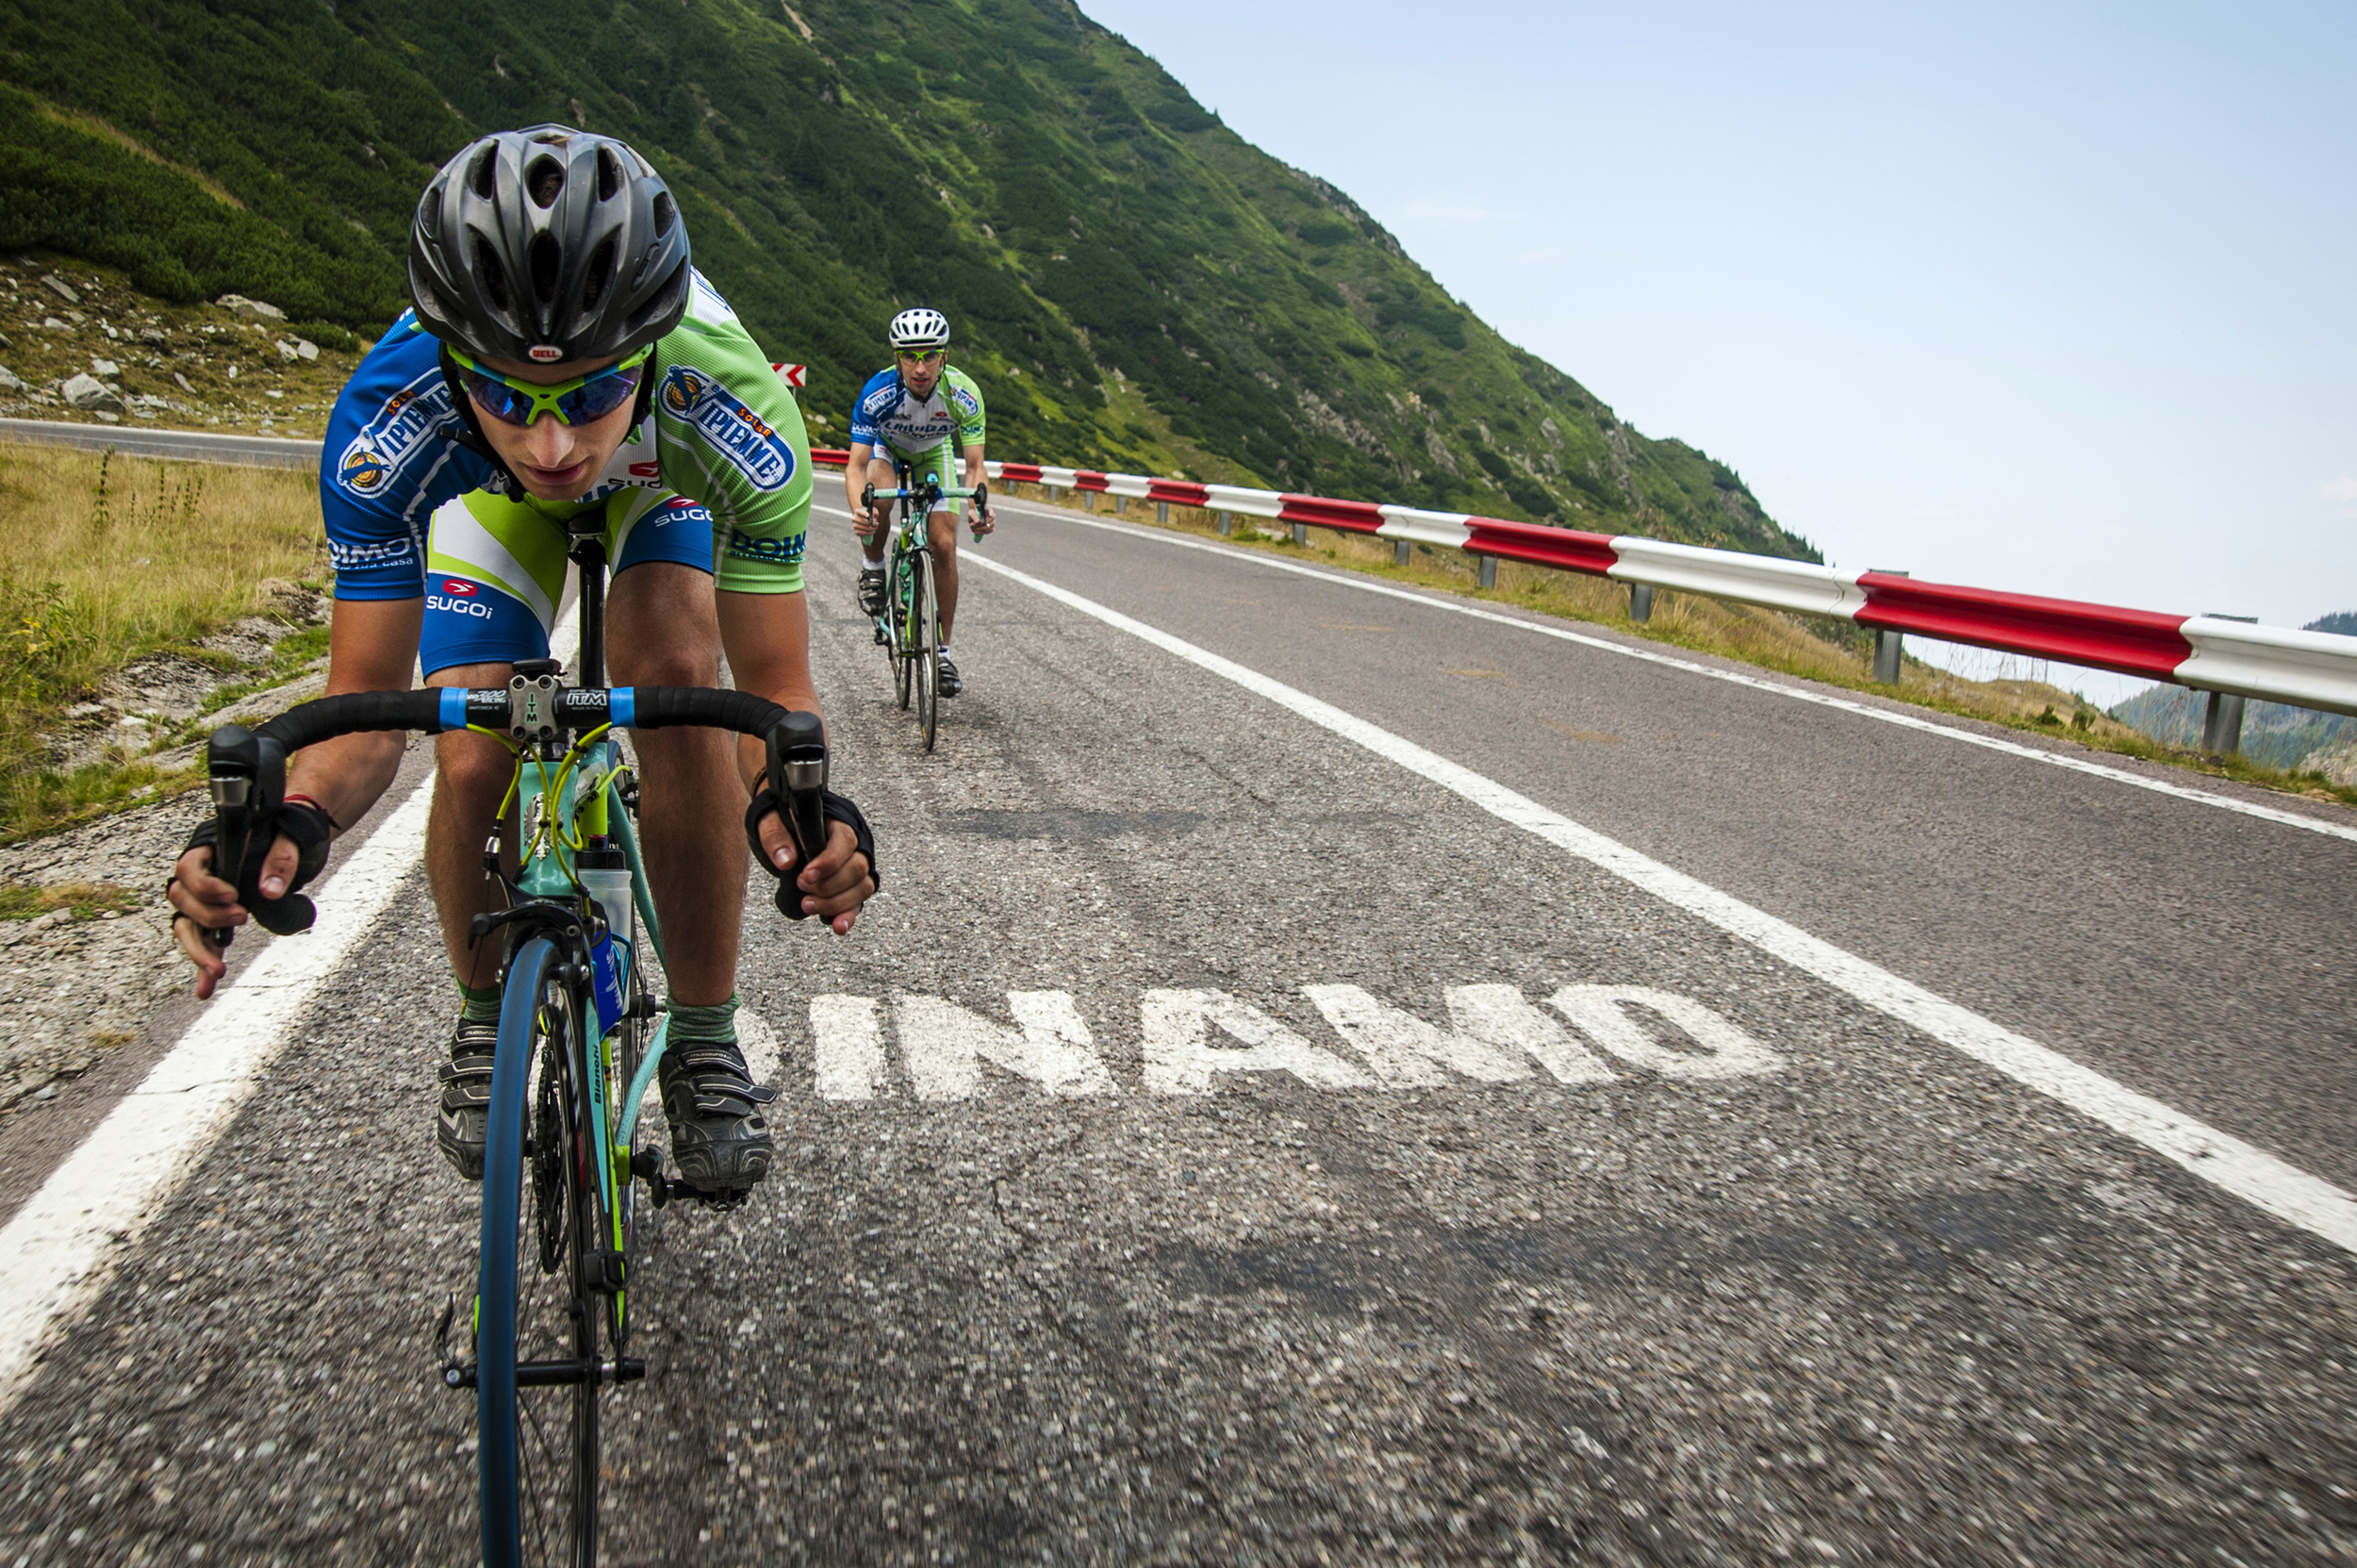 Timo Chiciudean and Richard Wakeford, both amateur cyclists from the United Kindom, race down the seemingly endless set of switchbacks and hairpin turns that make up the Transfăgărășan's northern face on August 9, 2013.